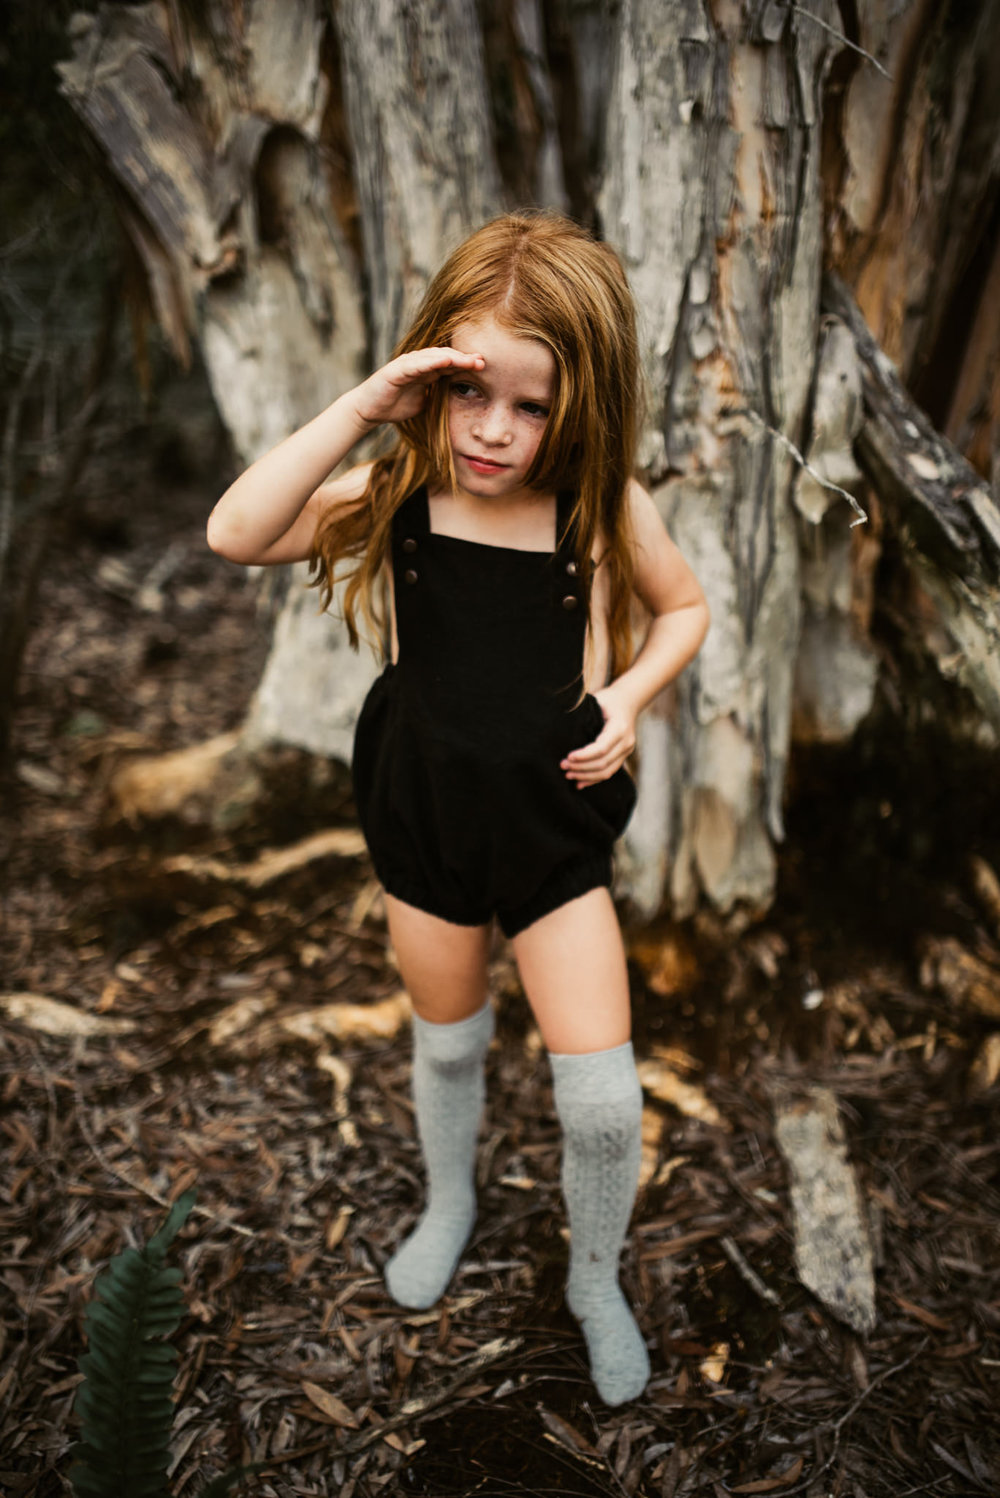 twyla jones photography - treasure coast florida - childrens adventure clothing commercial shoot--35.jpg